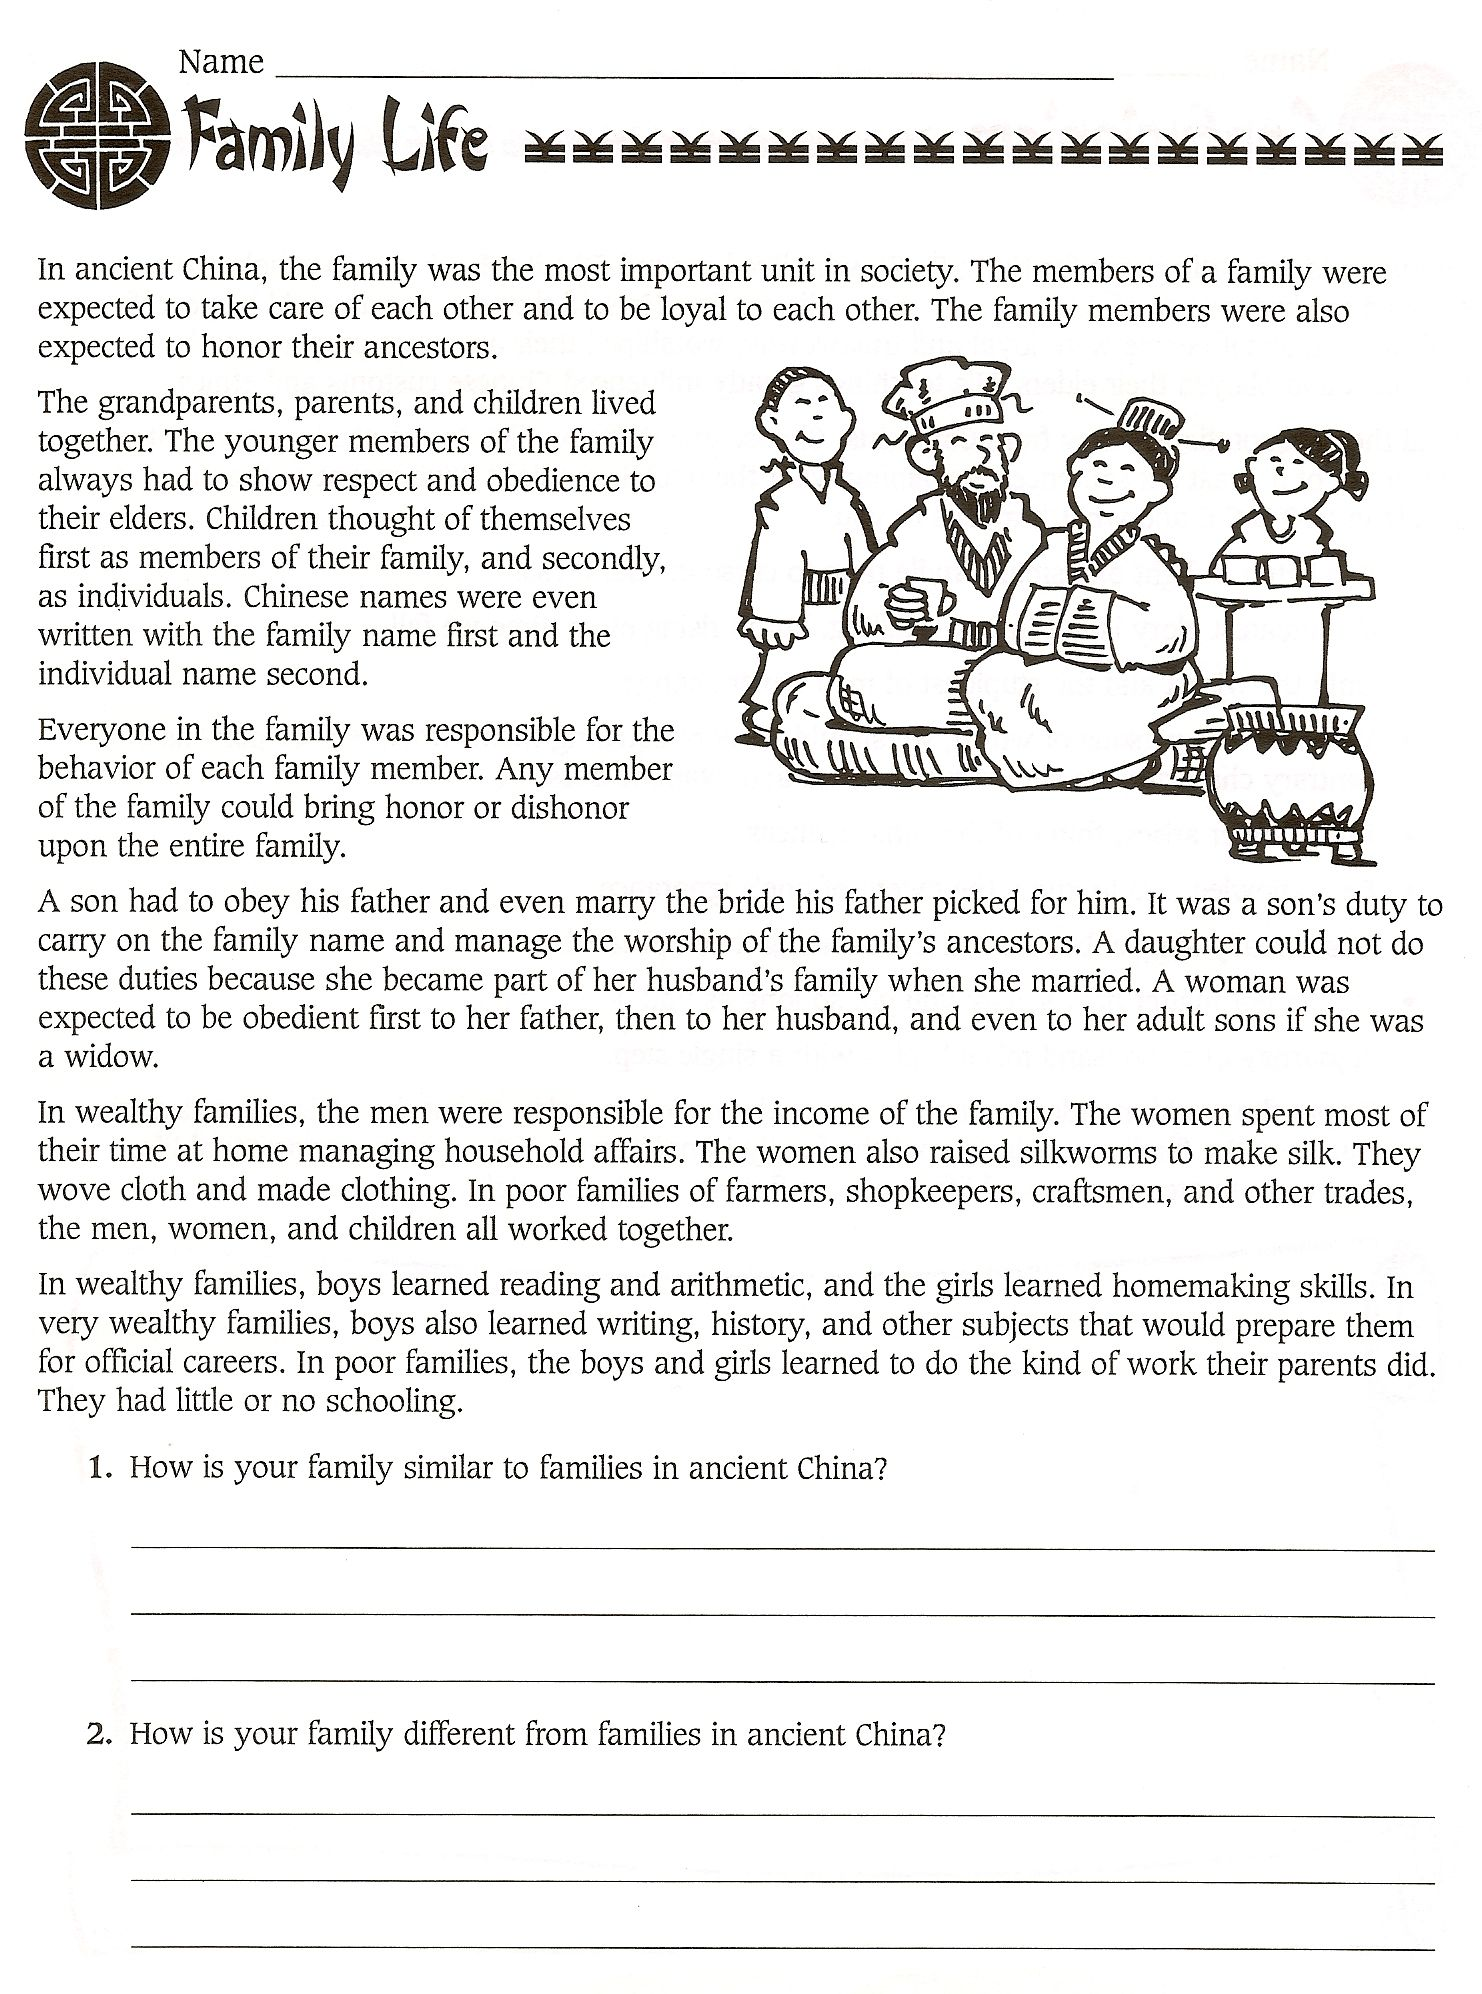 Worksheets 6th Grade Science Printable Worksheets 6th grade social studies ancient china worksheets free free